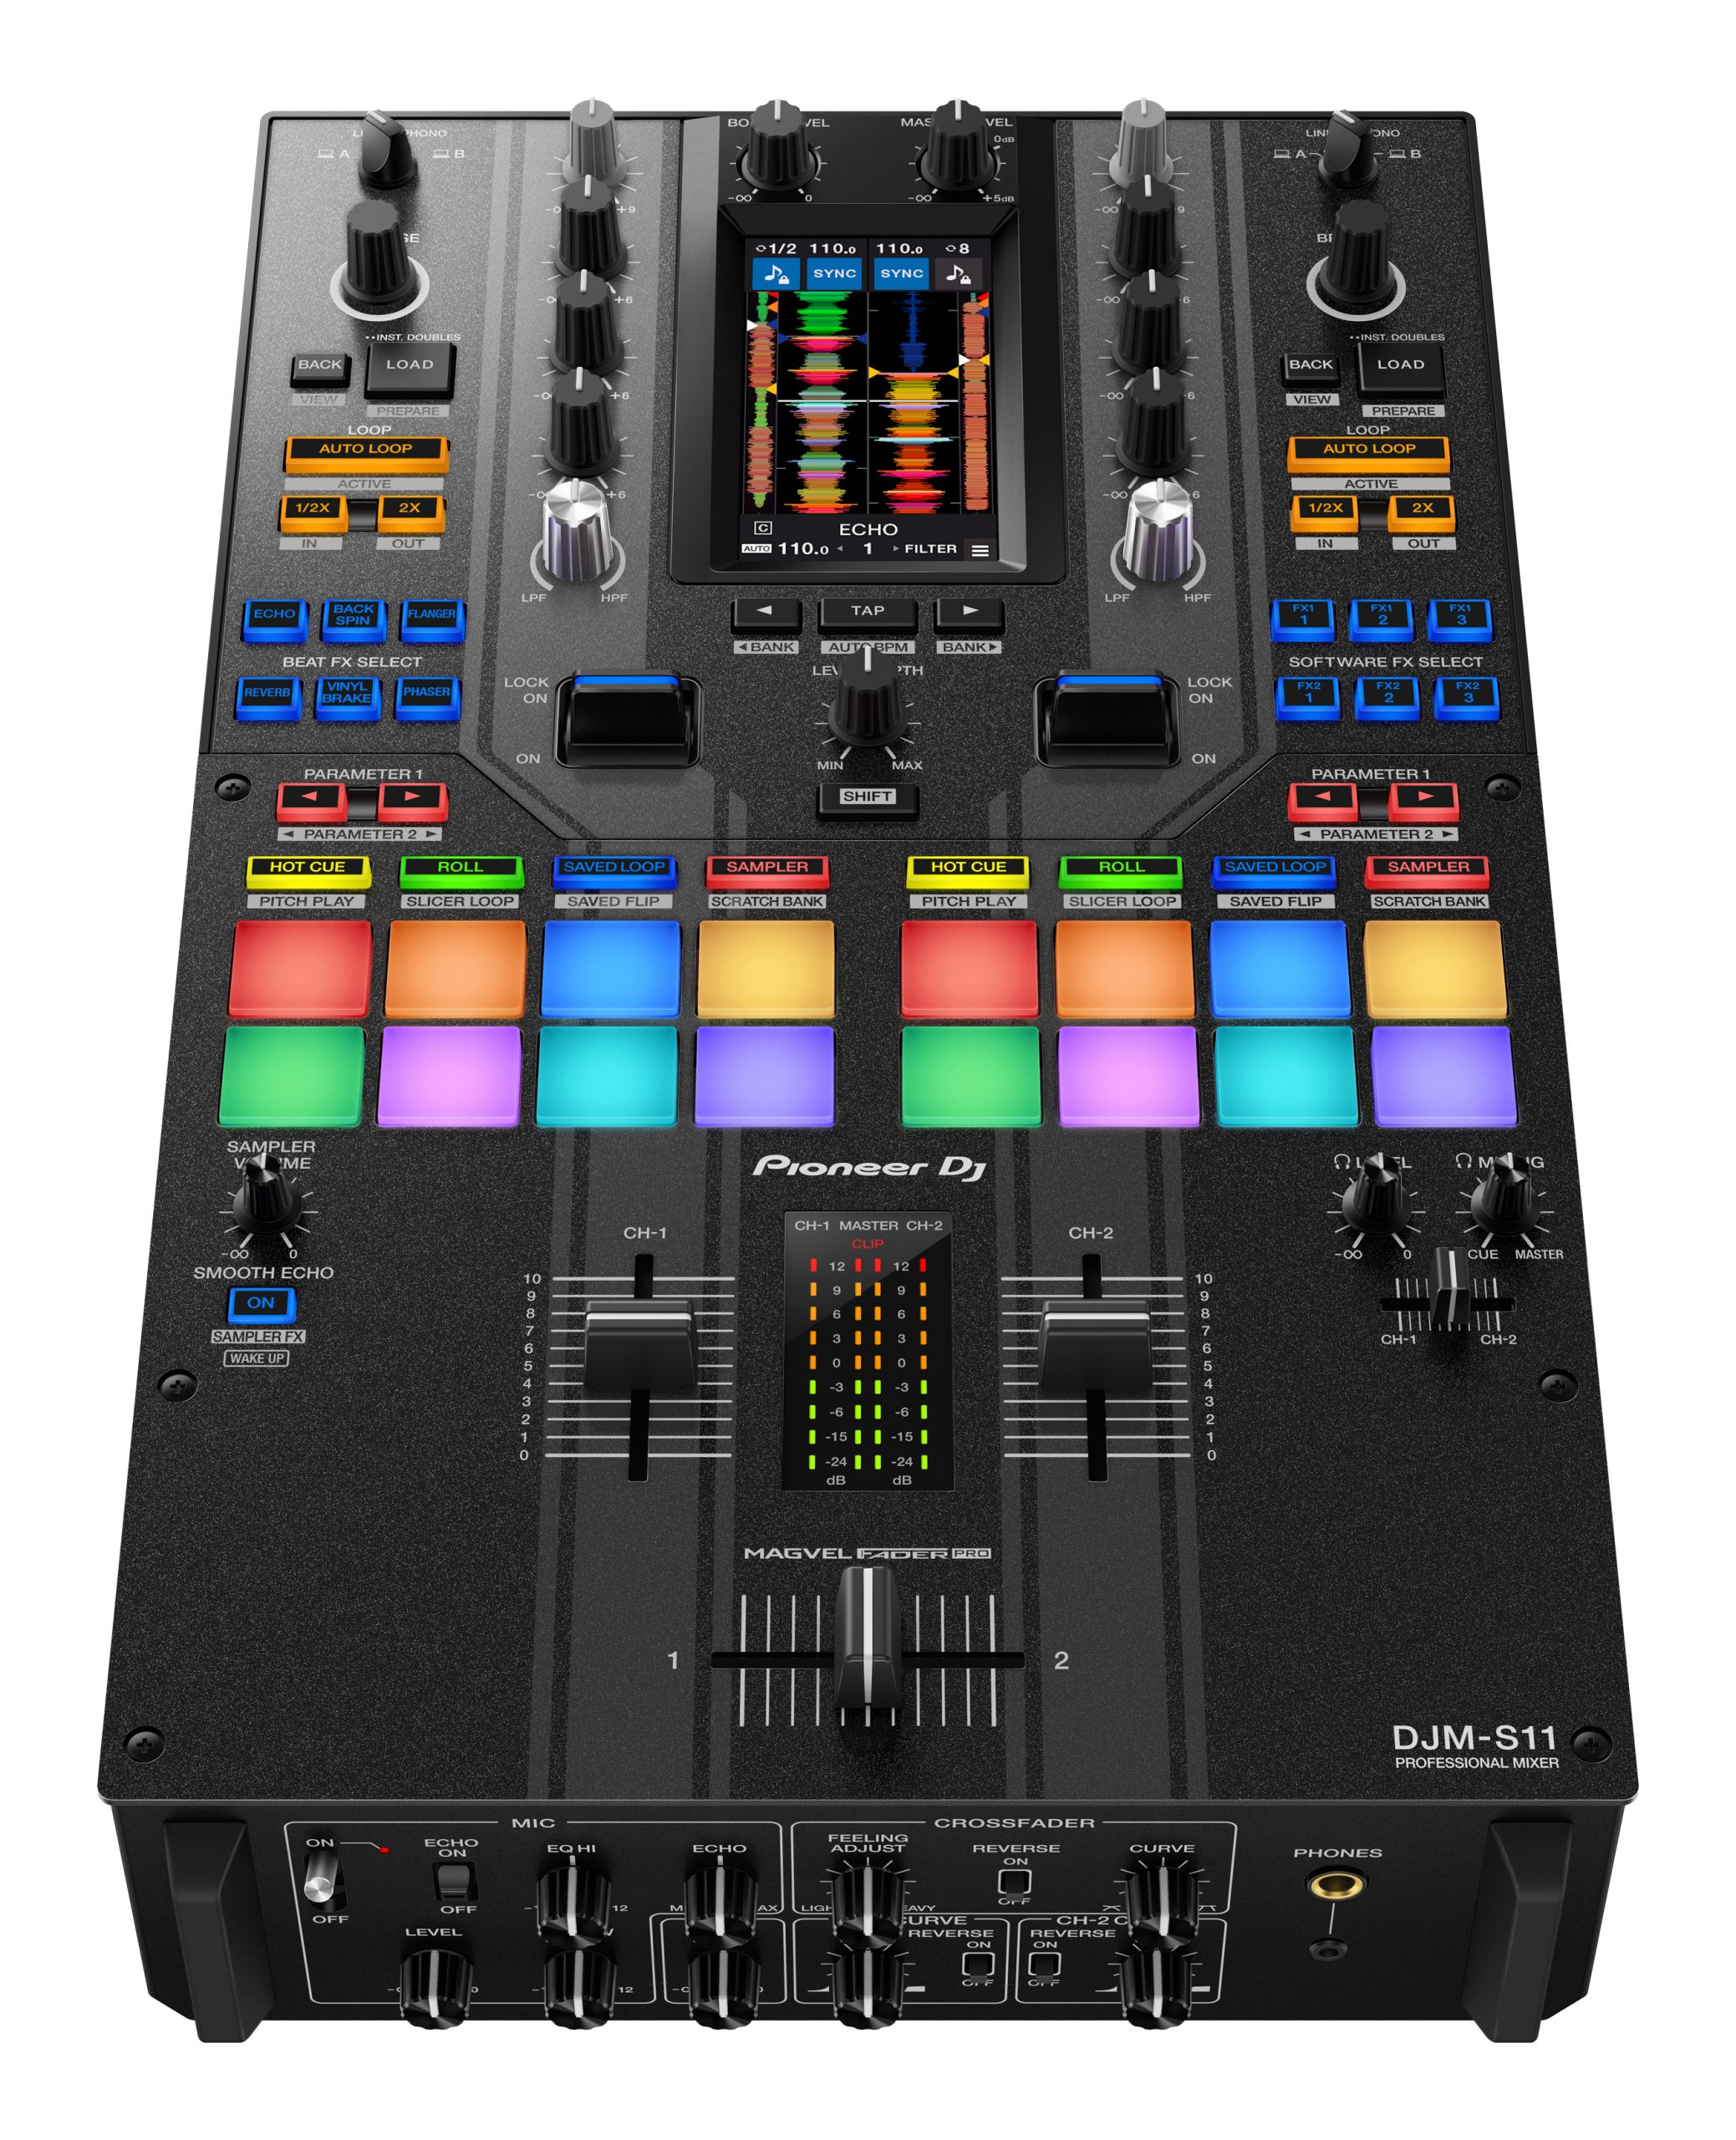 The Pioneer DJ DJM-S11 — some observations 4